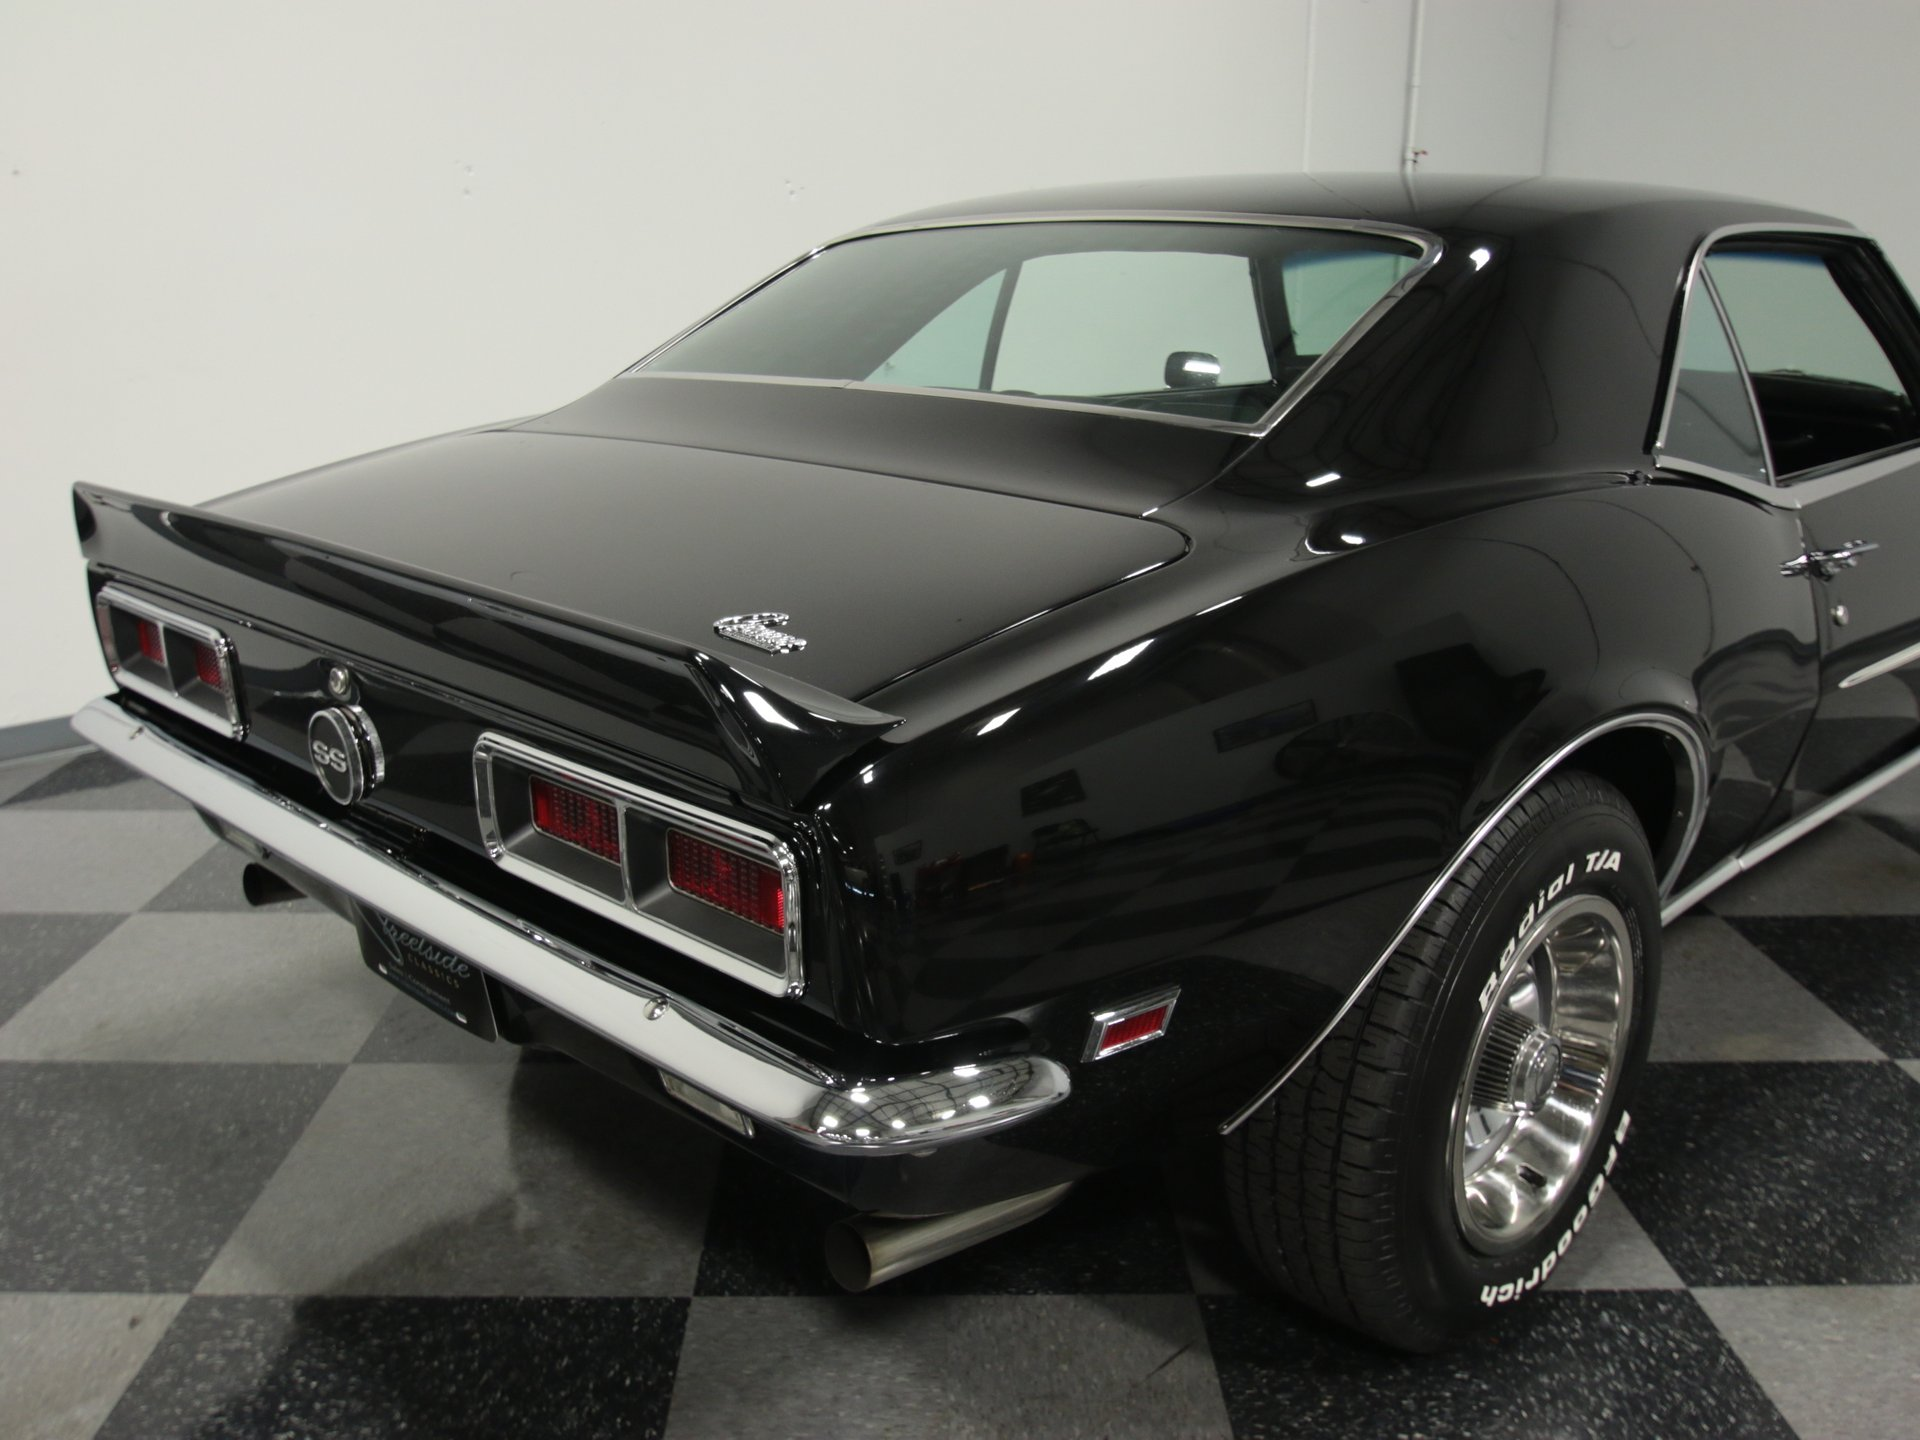 1968 Chevrolet Camaro Streetside Classics The Nations Trusted Chevy Ss View 360